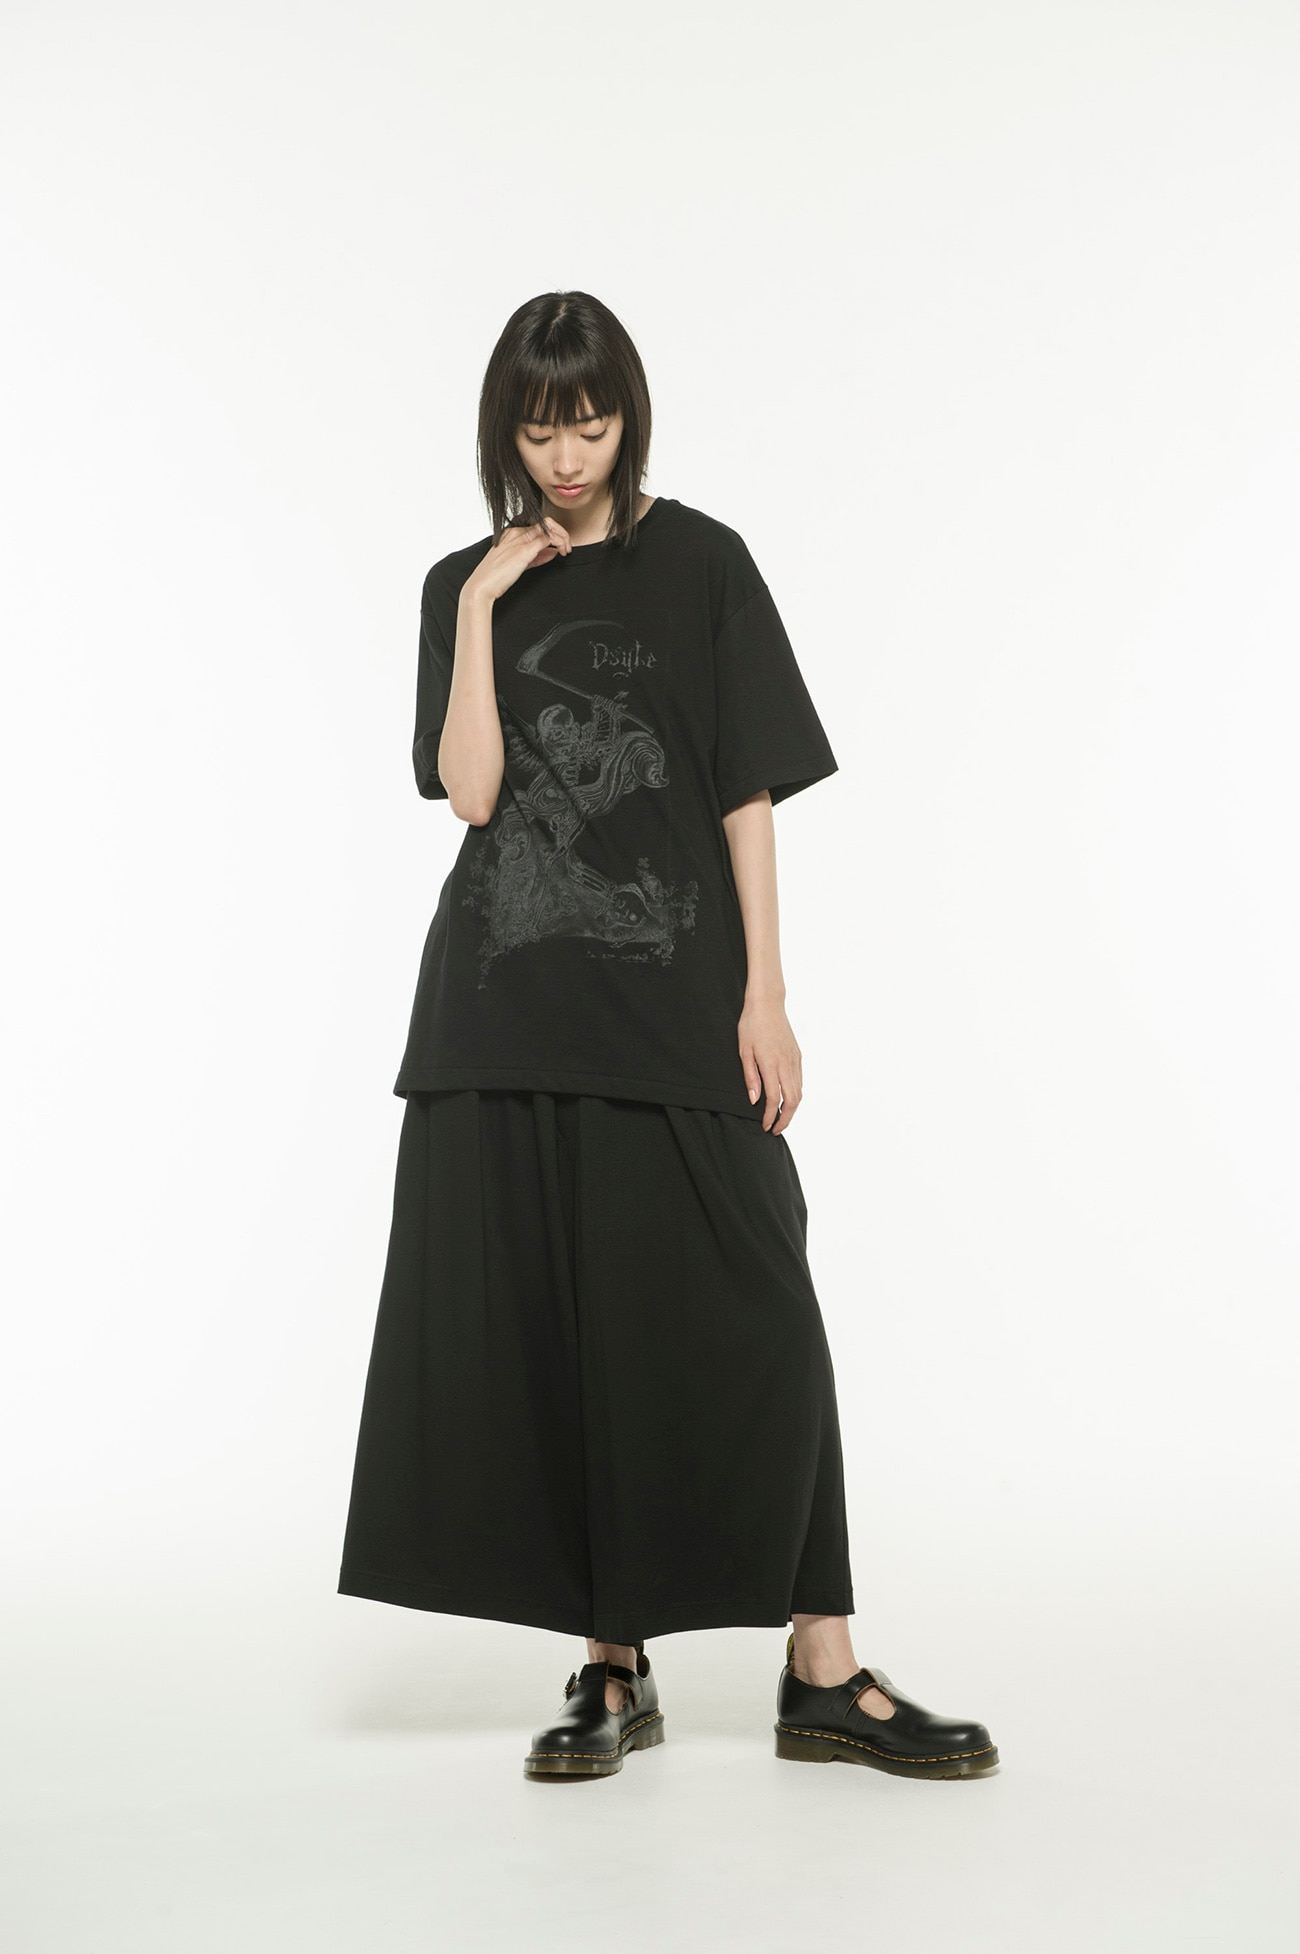 20 / CottonJersey Ds'yte Metal Skull T-Shirt